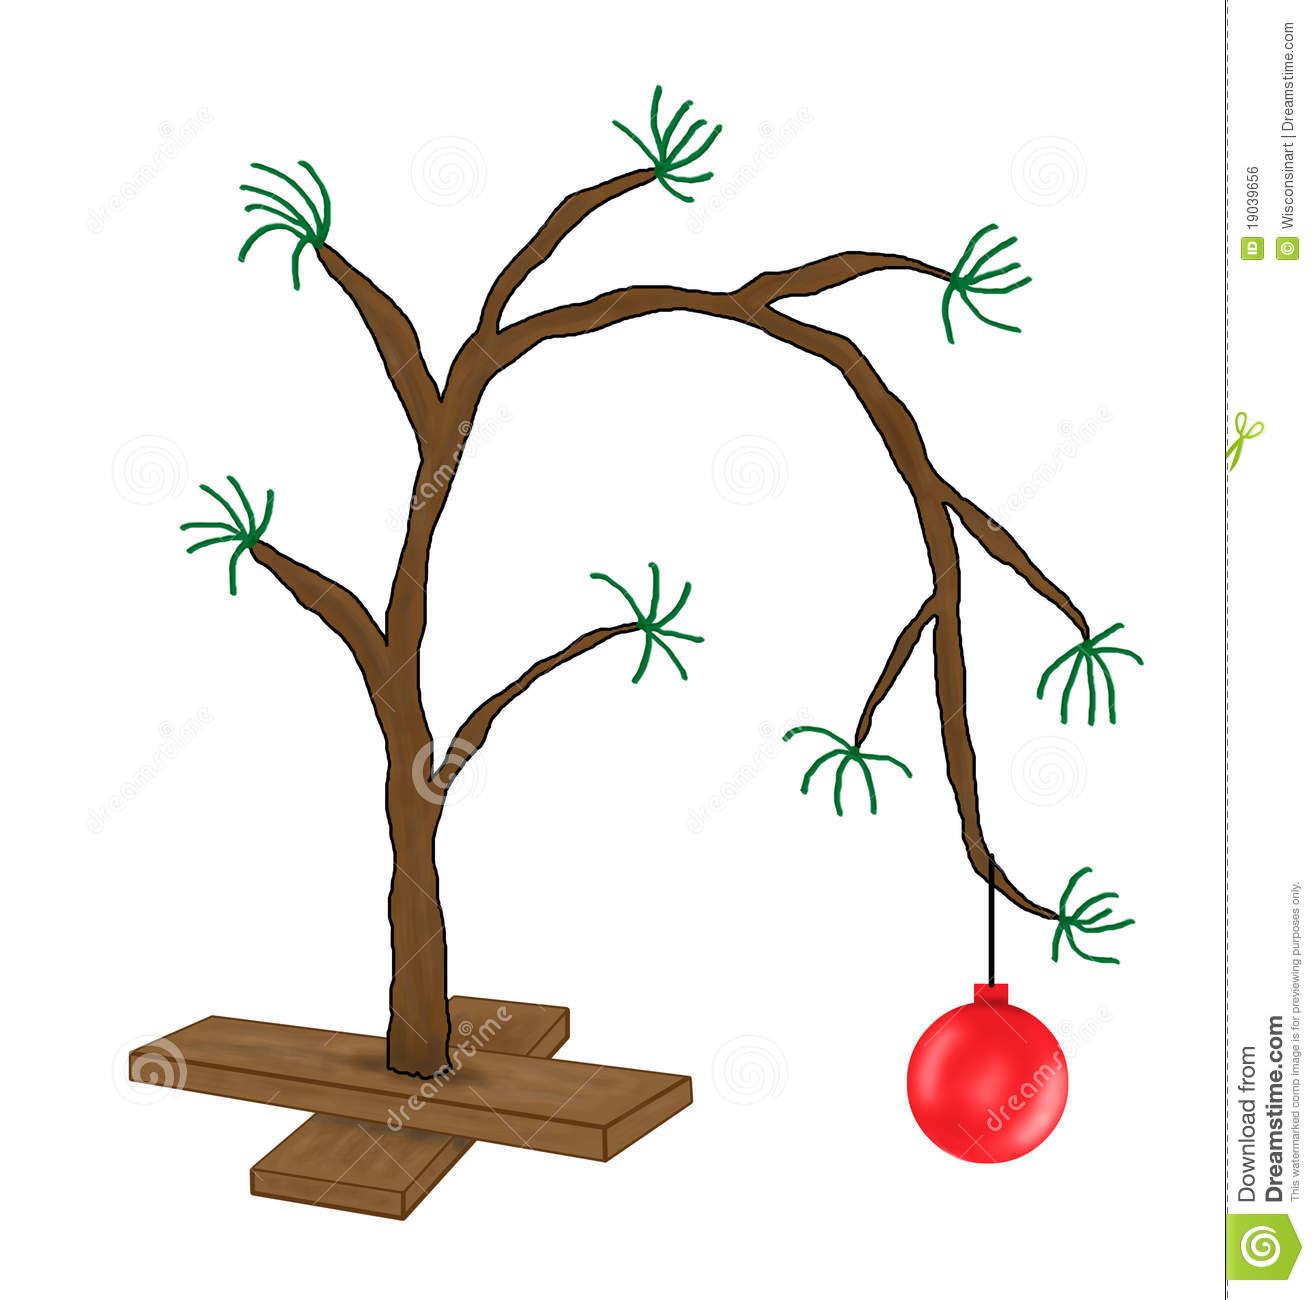 Funny Charlie Brown Christmas Tree Cartoon Stock Photo